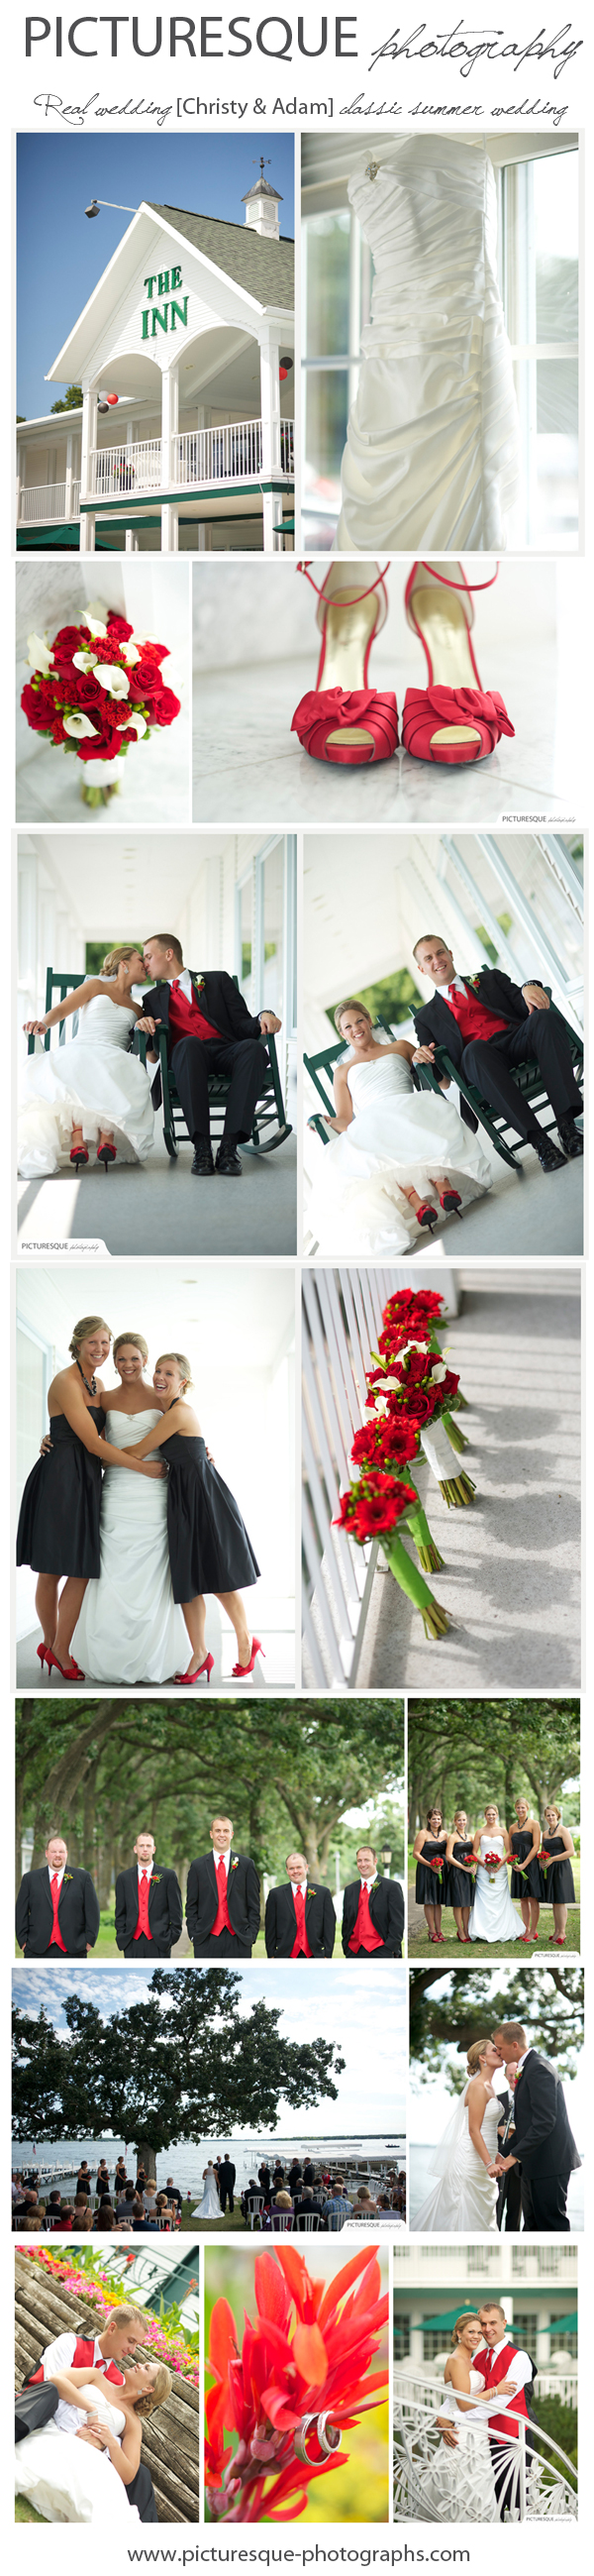 Wedding Photographers in Sioux Falls and Okoboji